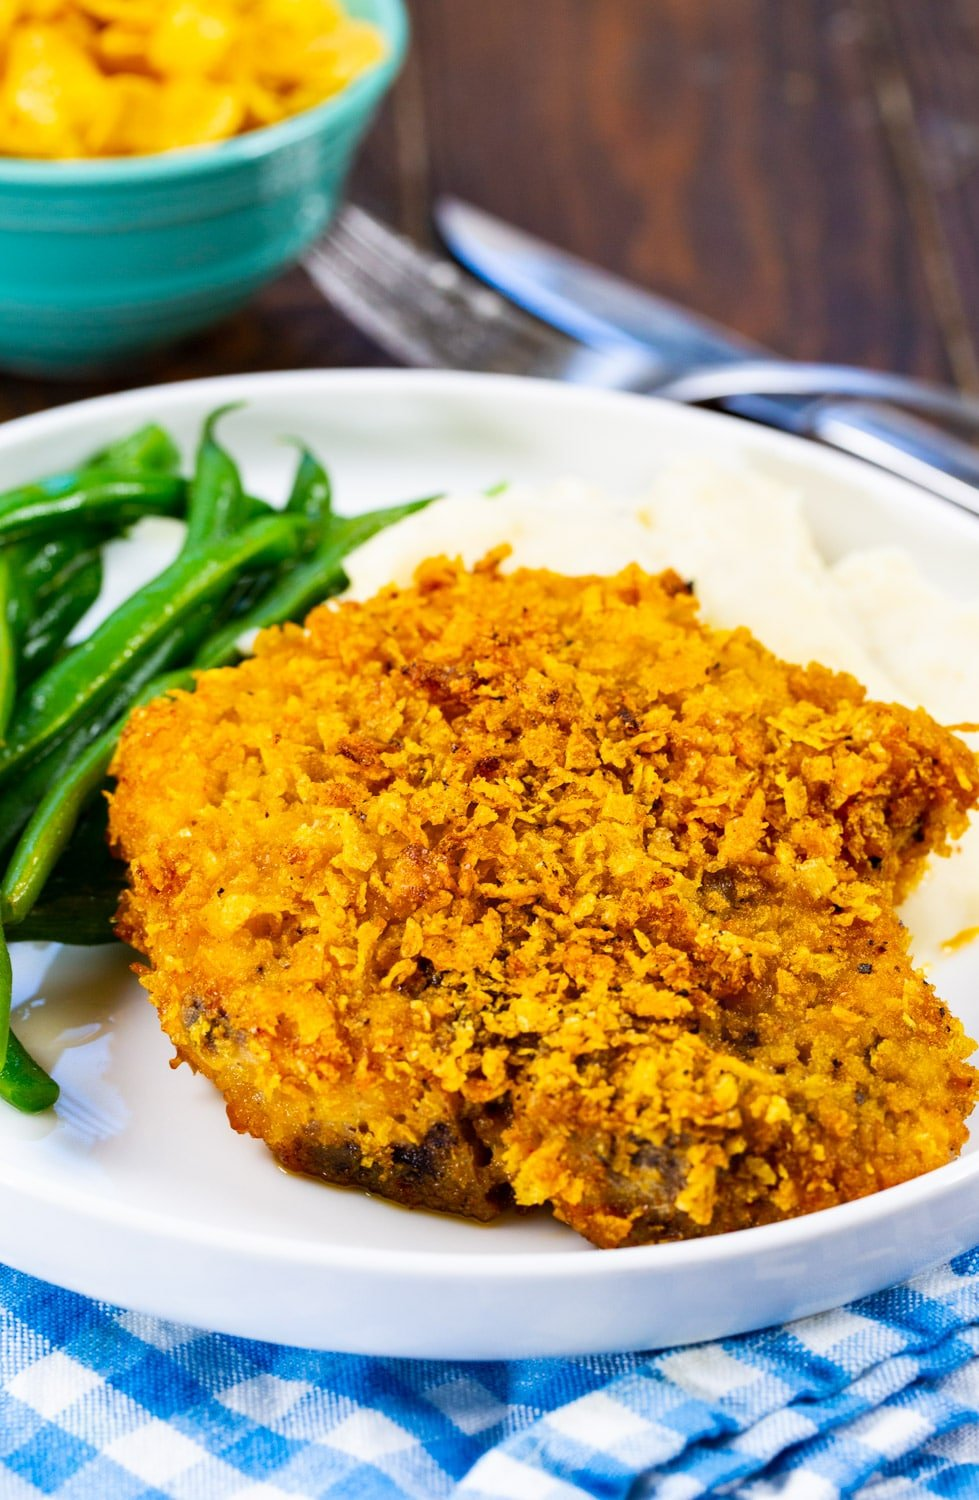 Cornflake Crusted Baked Pork Chop on plate with mashed potatoes and green beans.